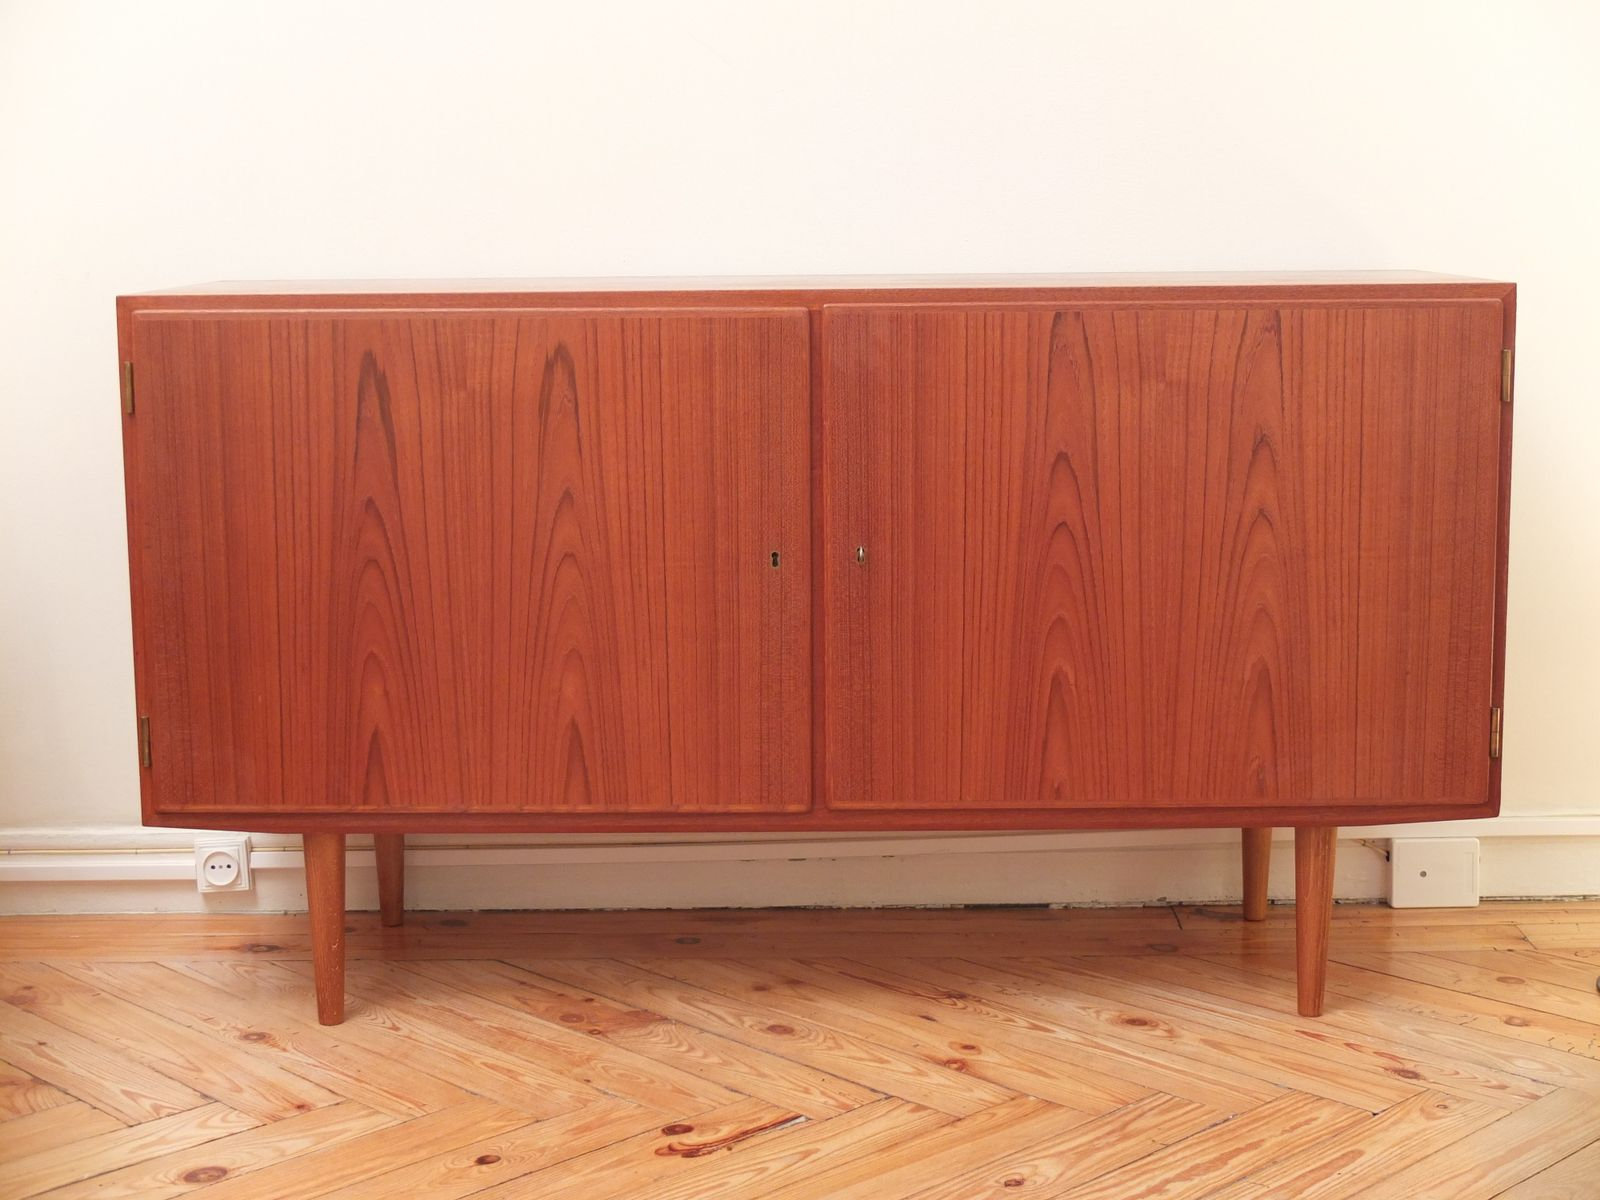 d nisches sideboard aus teakholz von poul hundevad 1960er bei pamono kaufen. Black Bedroom Furniture Sets. Home Design Ideas